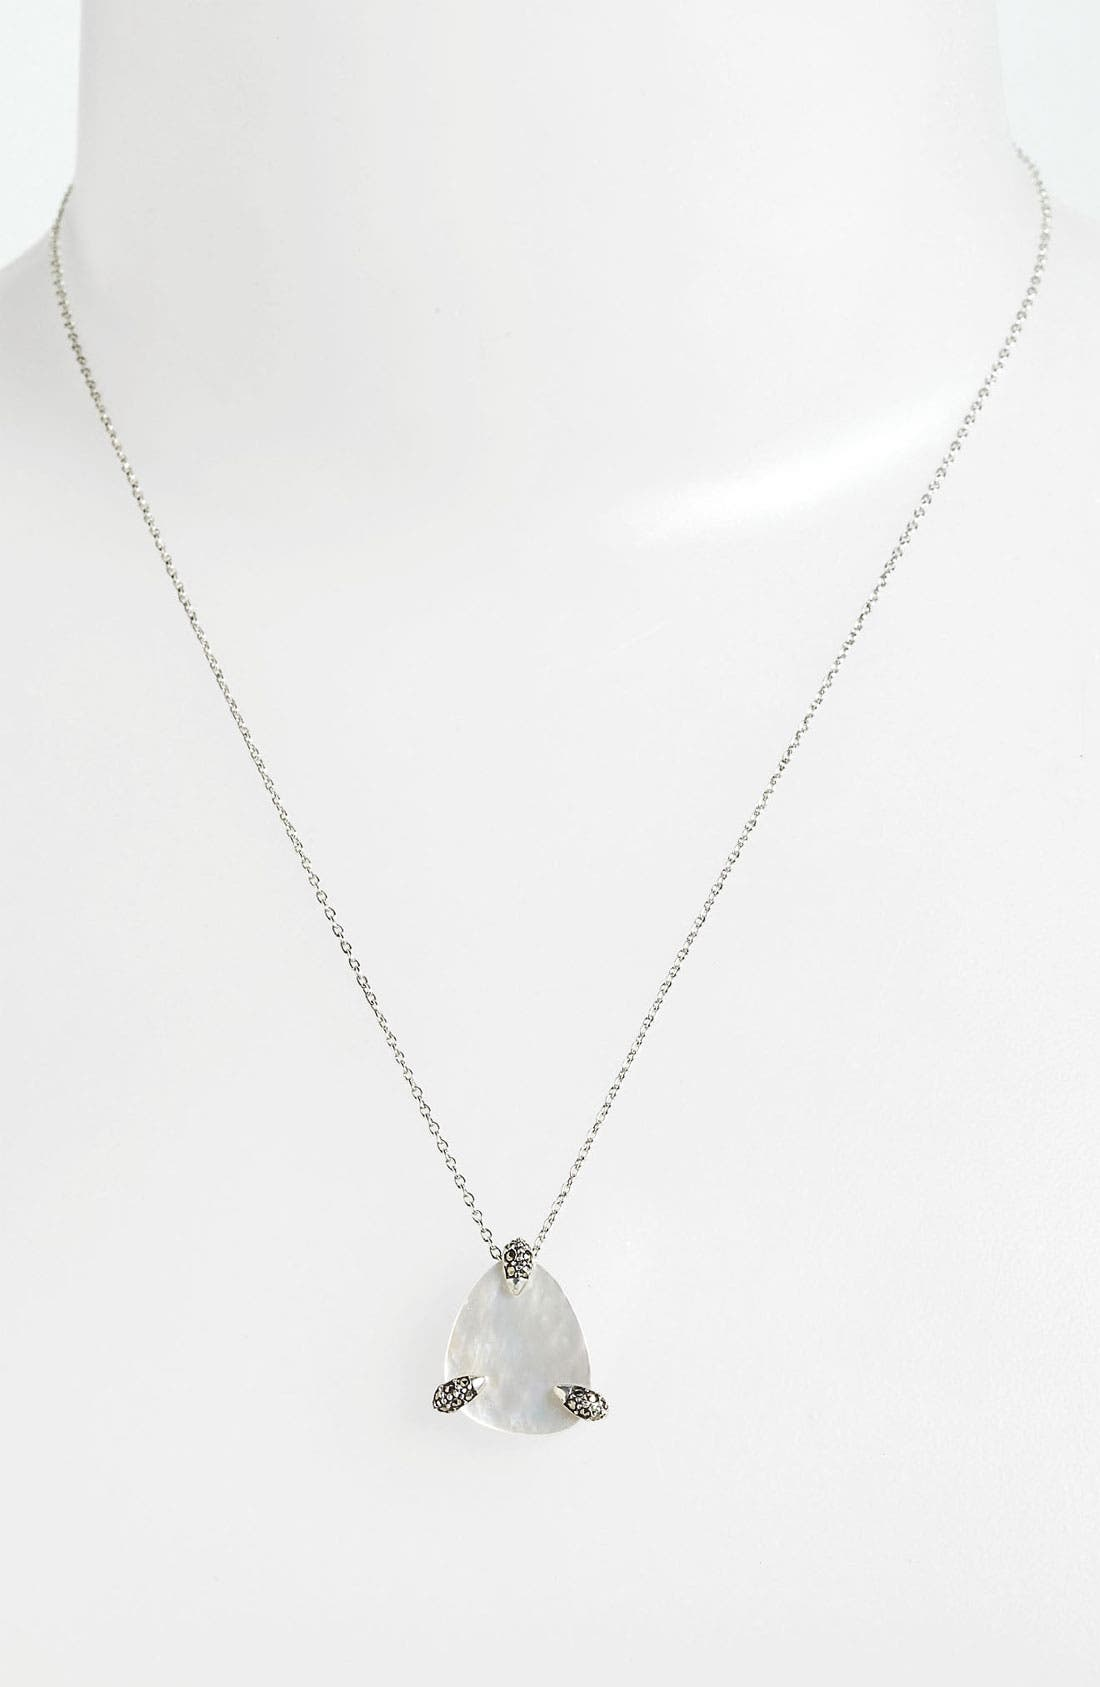 Alternate Image 1 Selected - Judith Jack Small Pendant Necklace